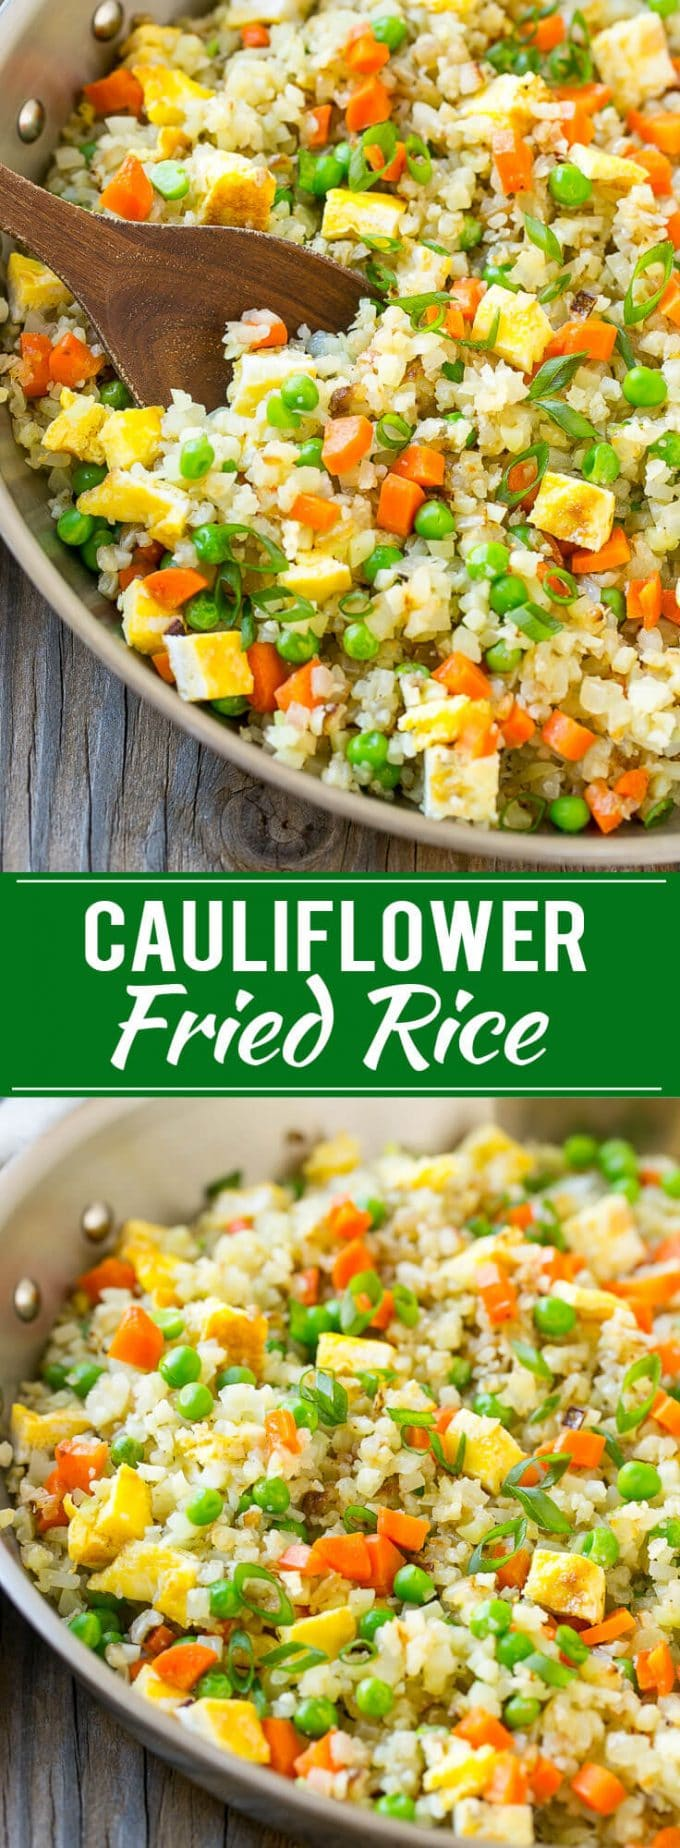 Cauliflower Fried Rice | Cauliflower Rice | Low Carb Rice | Cauliflower Rice Recipe | Cauliflower Recipes #cauliflower #lowcarb #keto #cauliflowerrice #dinner #dinneratthezoo